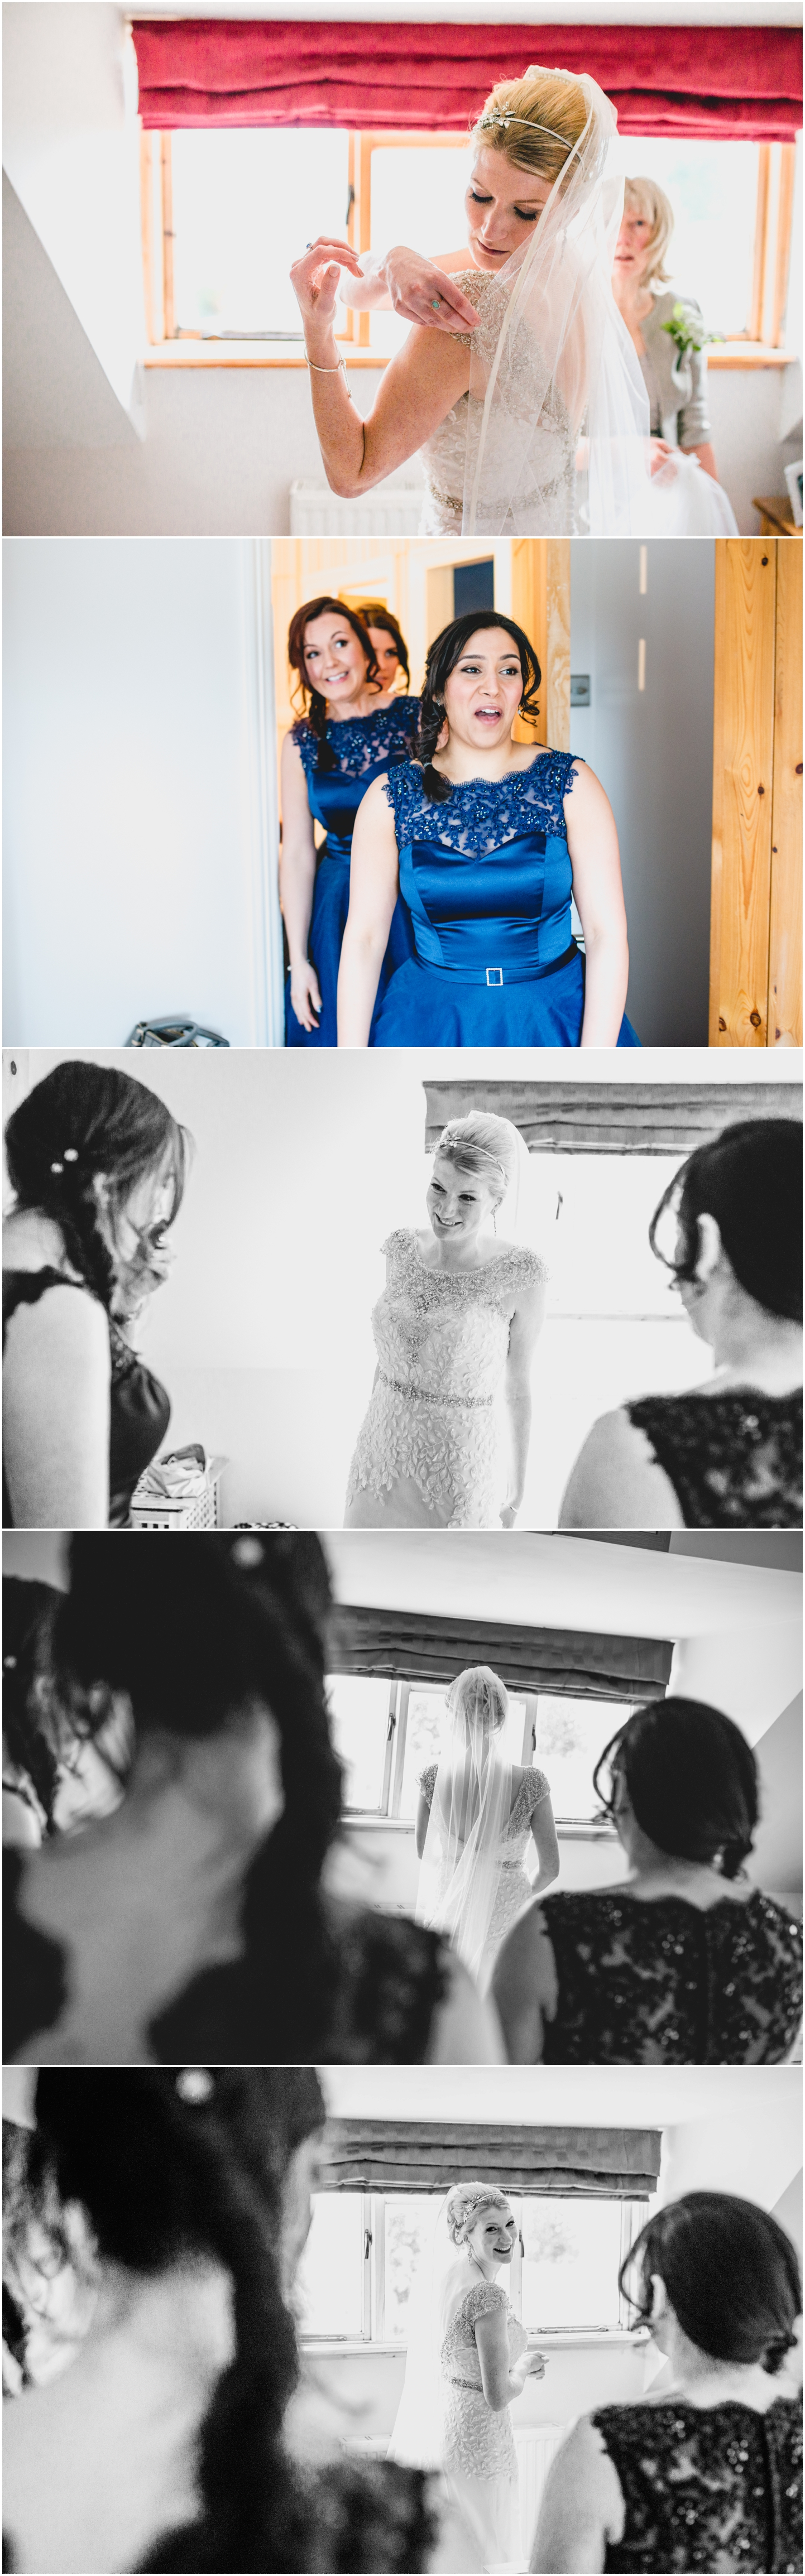 Pendrell Hall Wedding Photography by Lisa Carpenter Photography, West Midlands photographer, bridal prep